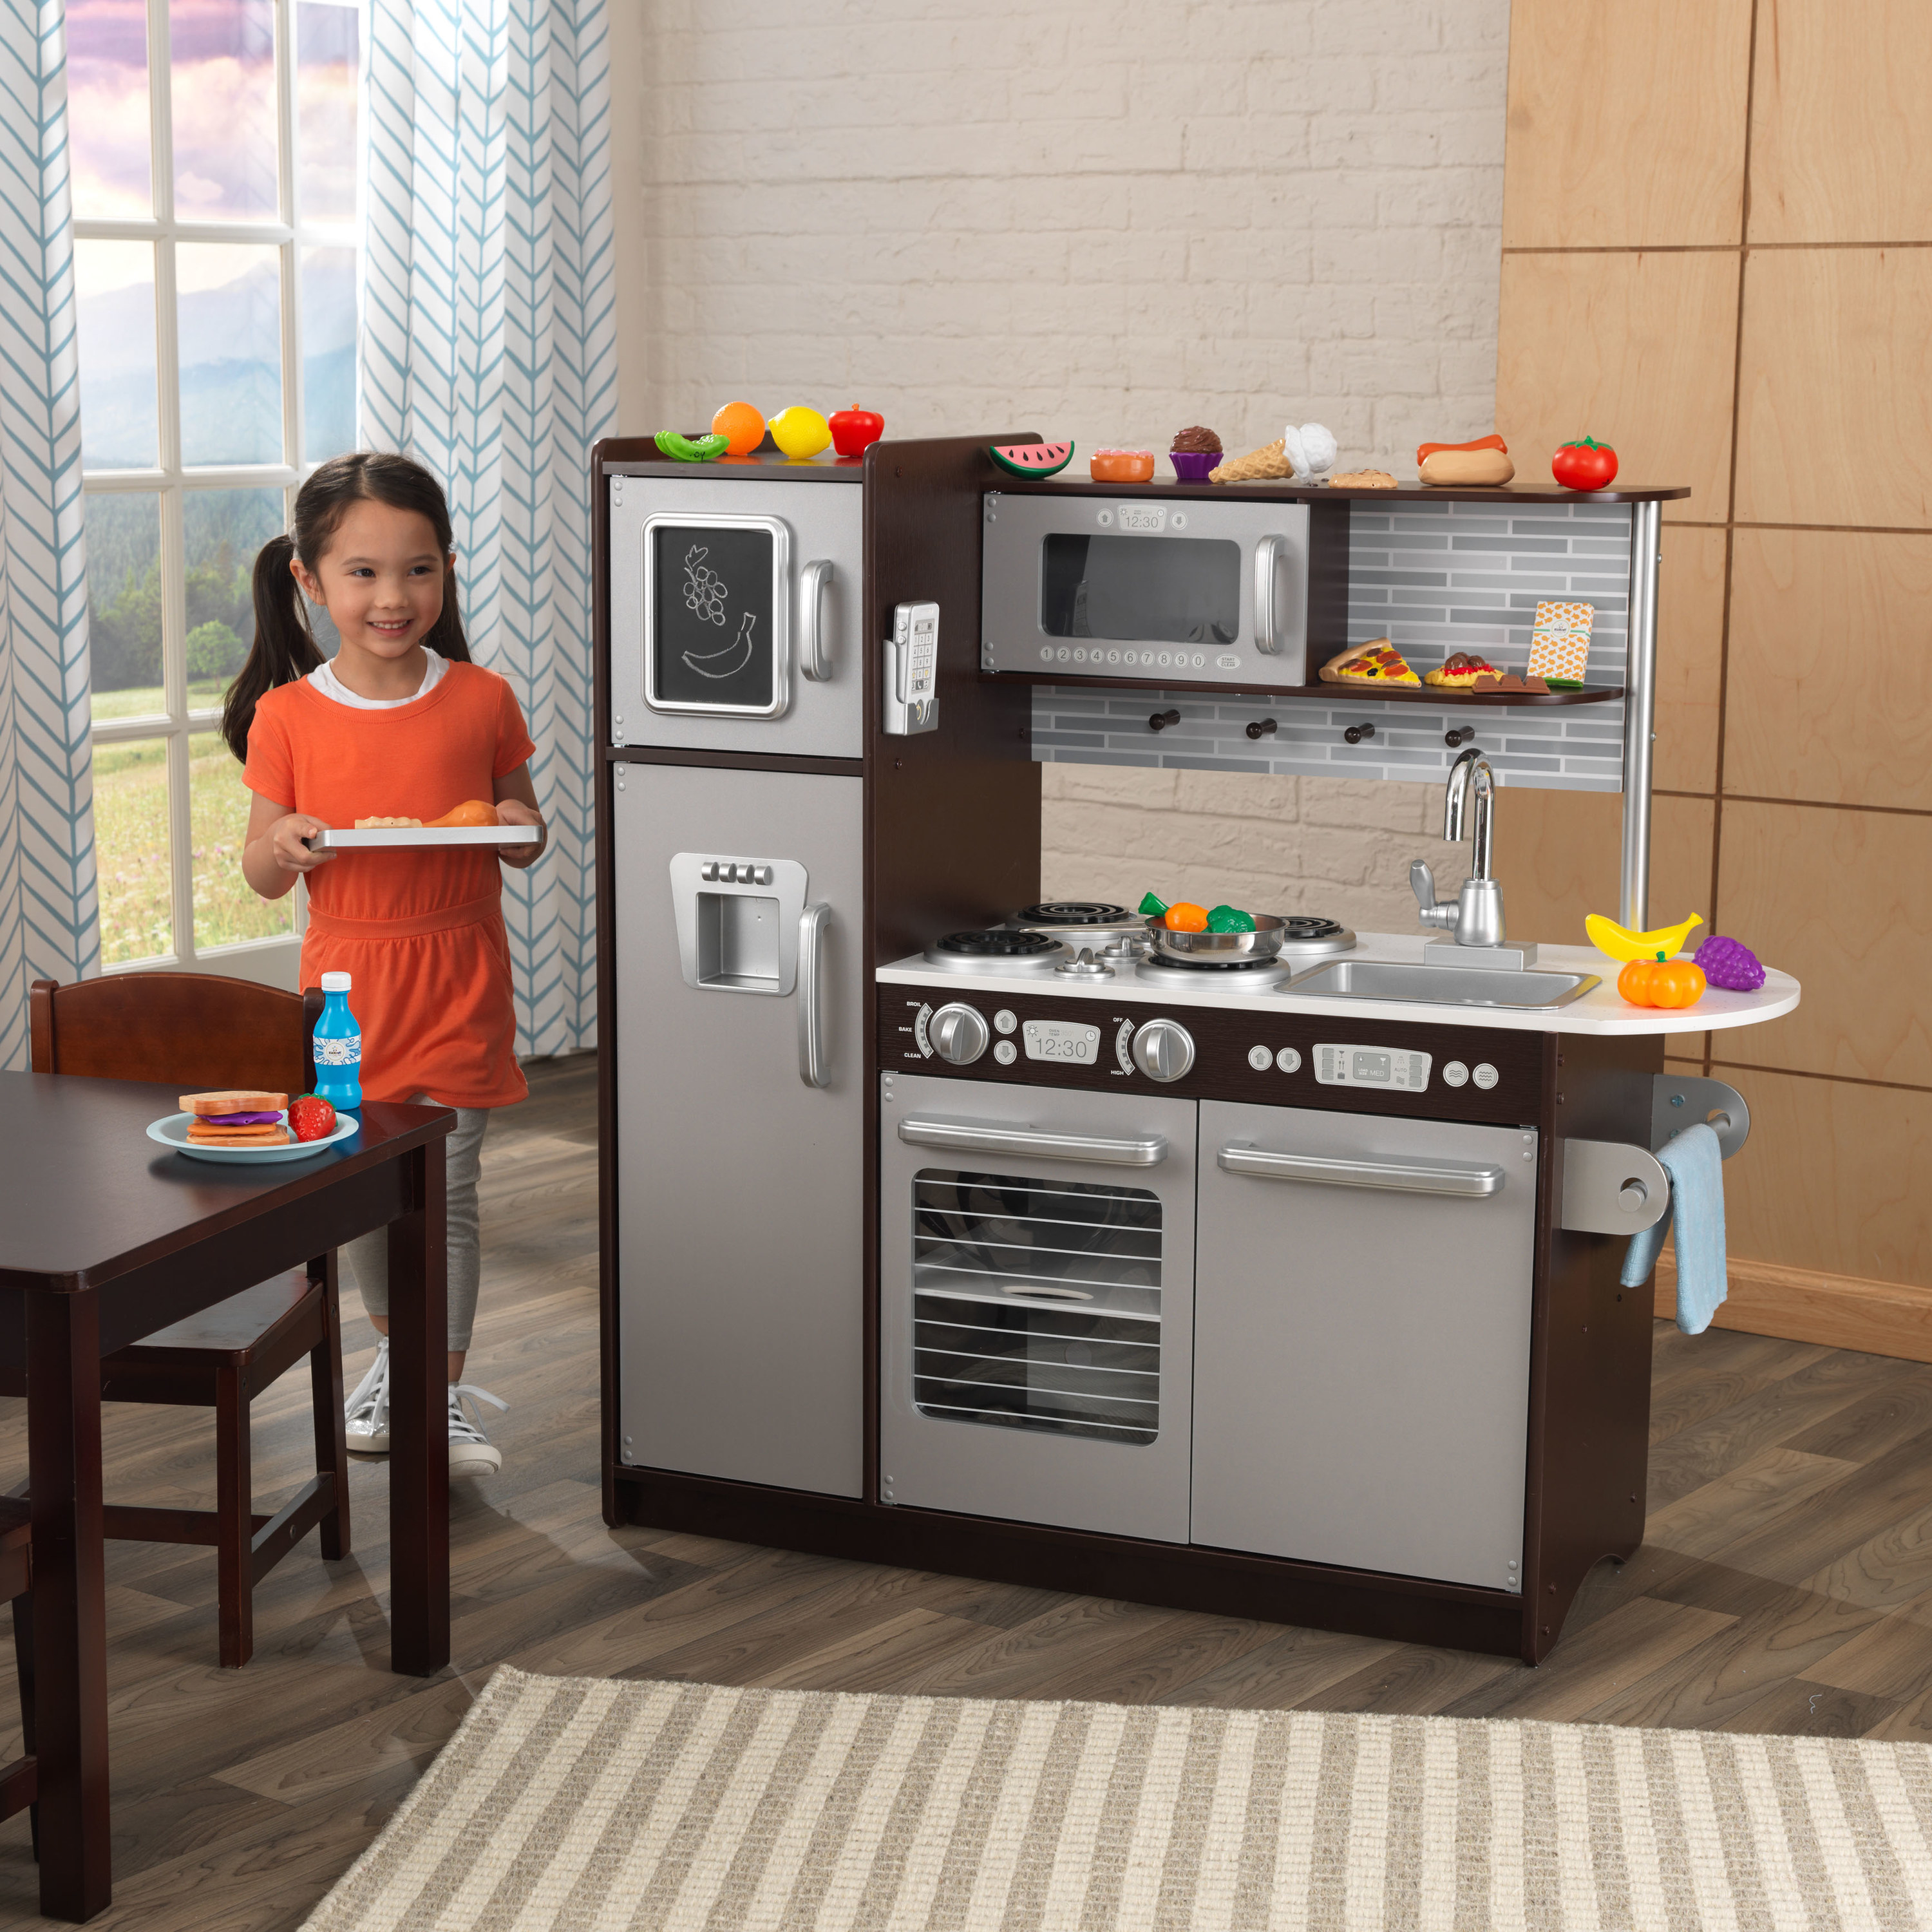 The kitchen set, which contains a play fridge/ freezer, sink, counter, over, microwave, and cabinet